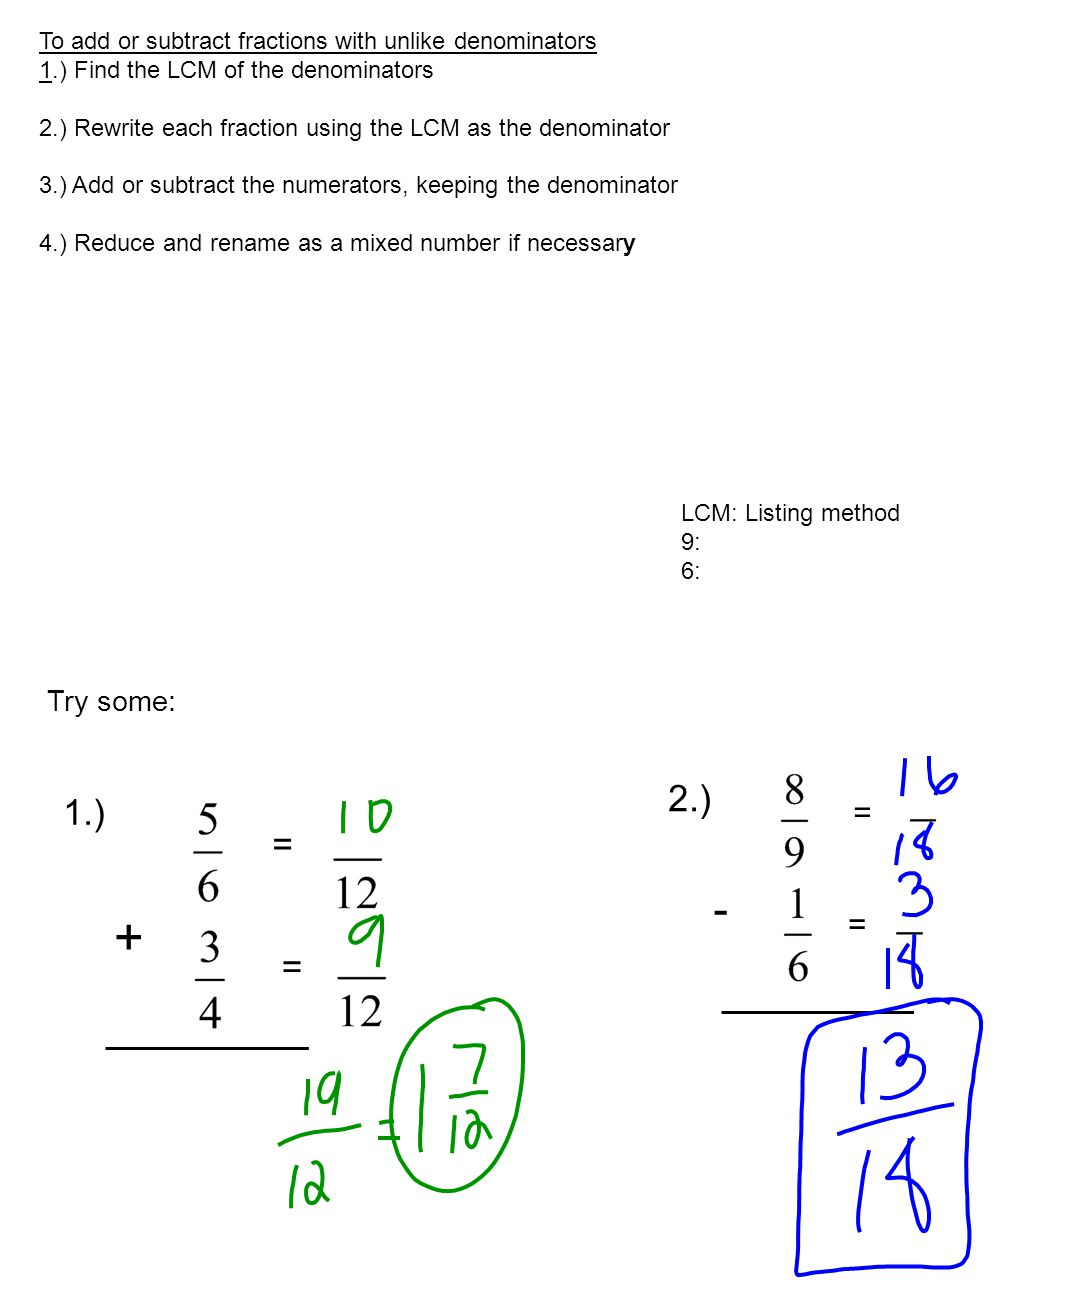 Worksheet Subtracting Different Denominators adding and subtracting unlike denominator fractions subtract math worksheet shade the model to help solve each problem 1 2 and